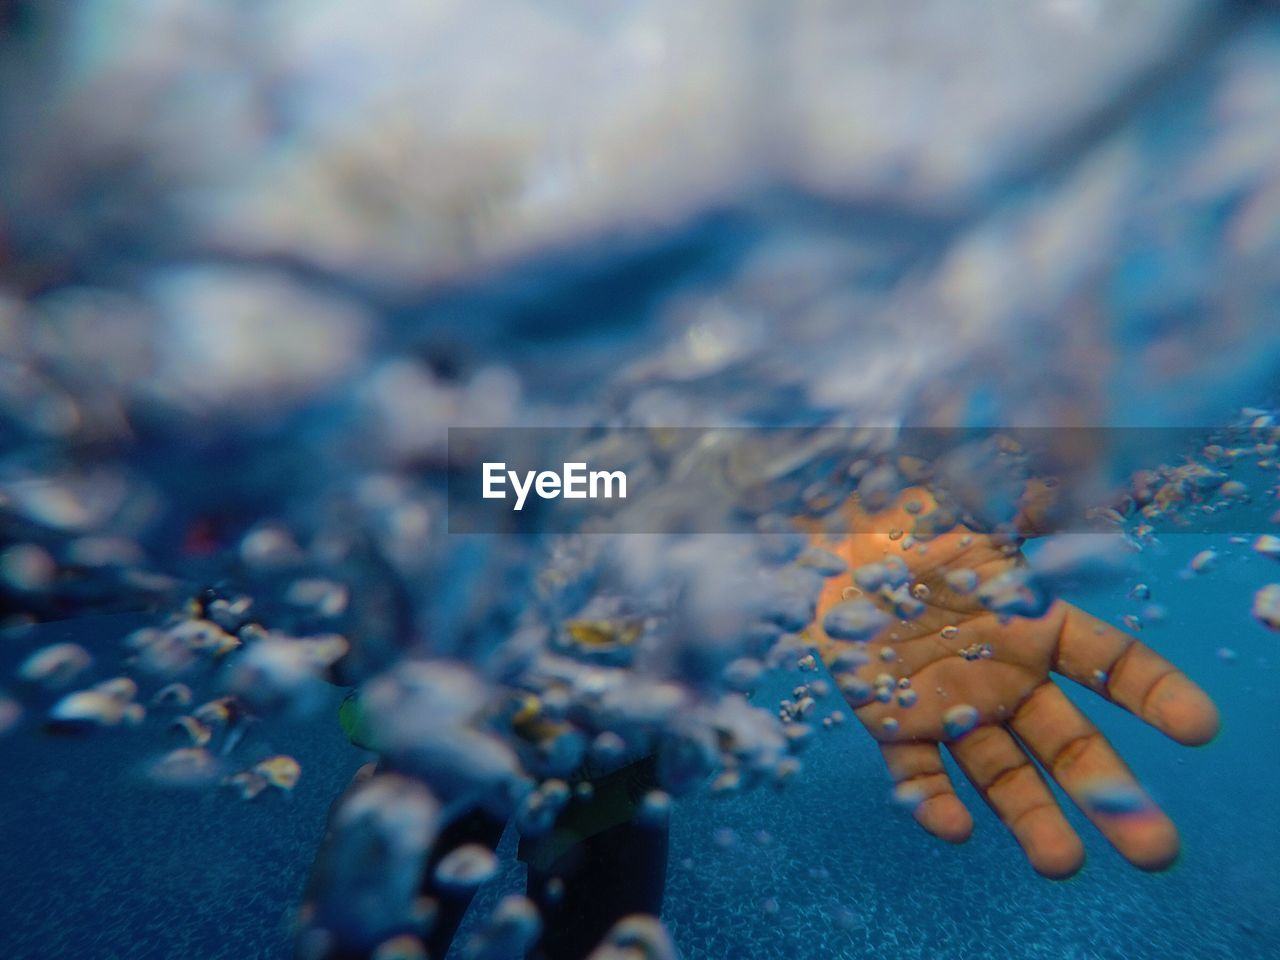 Close-up of hand undersea